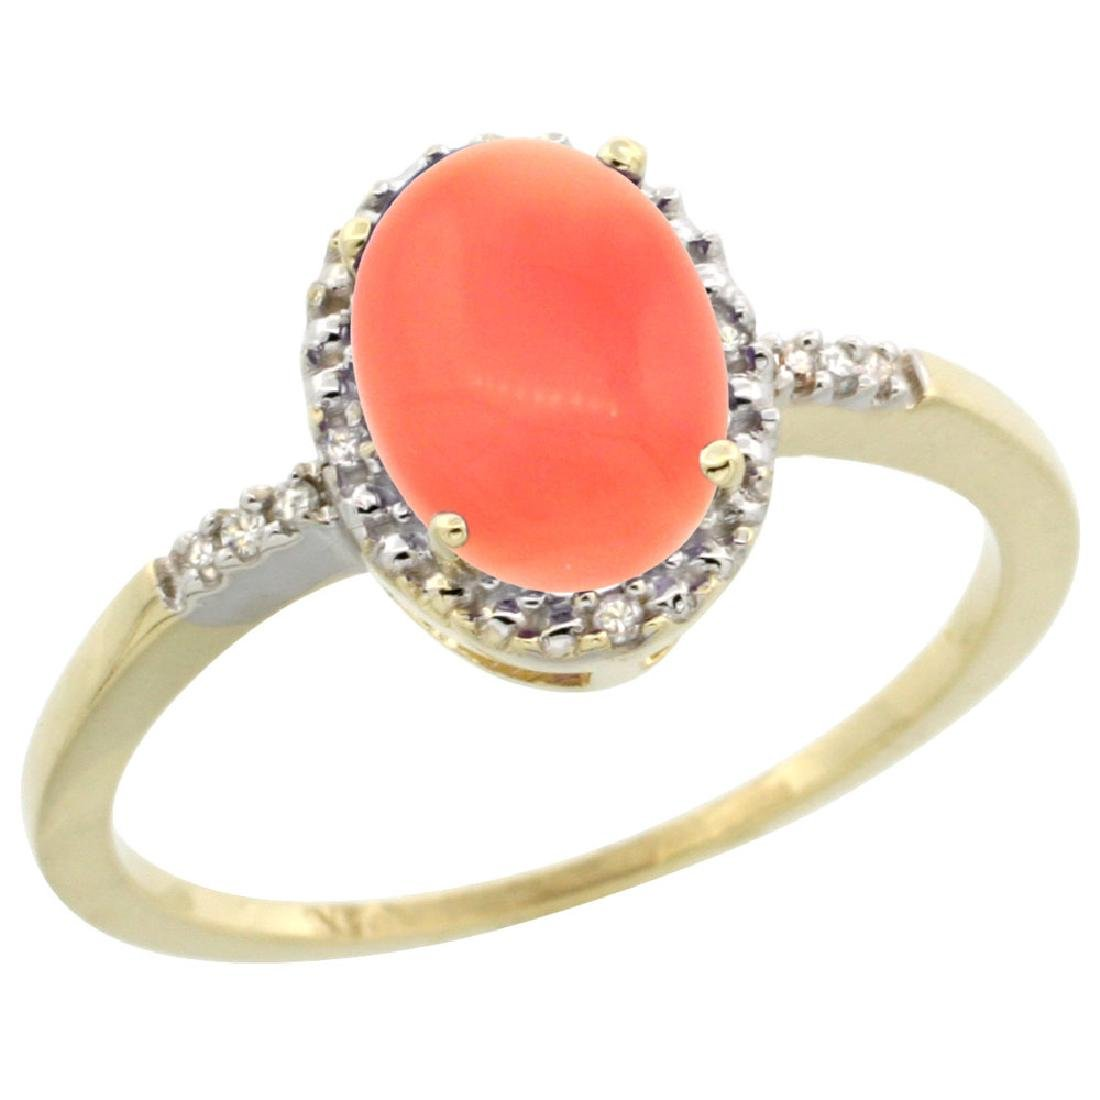 Natural 1.15 ctw Coral & Diamond Engagement Ring 14K